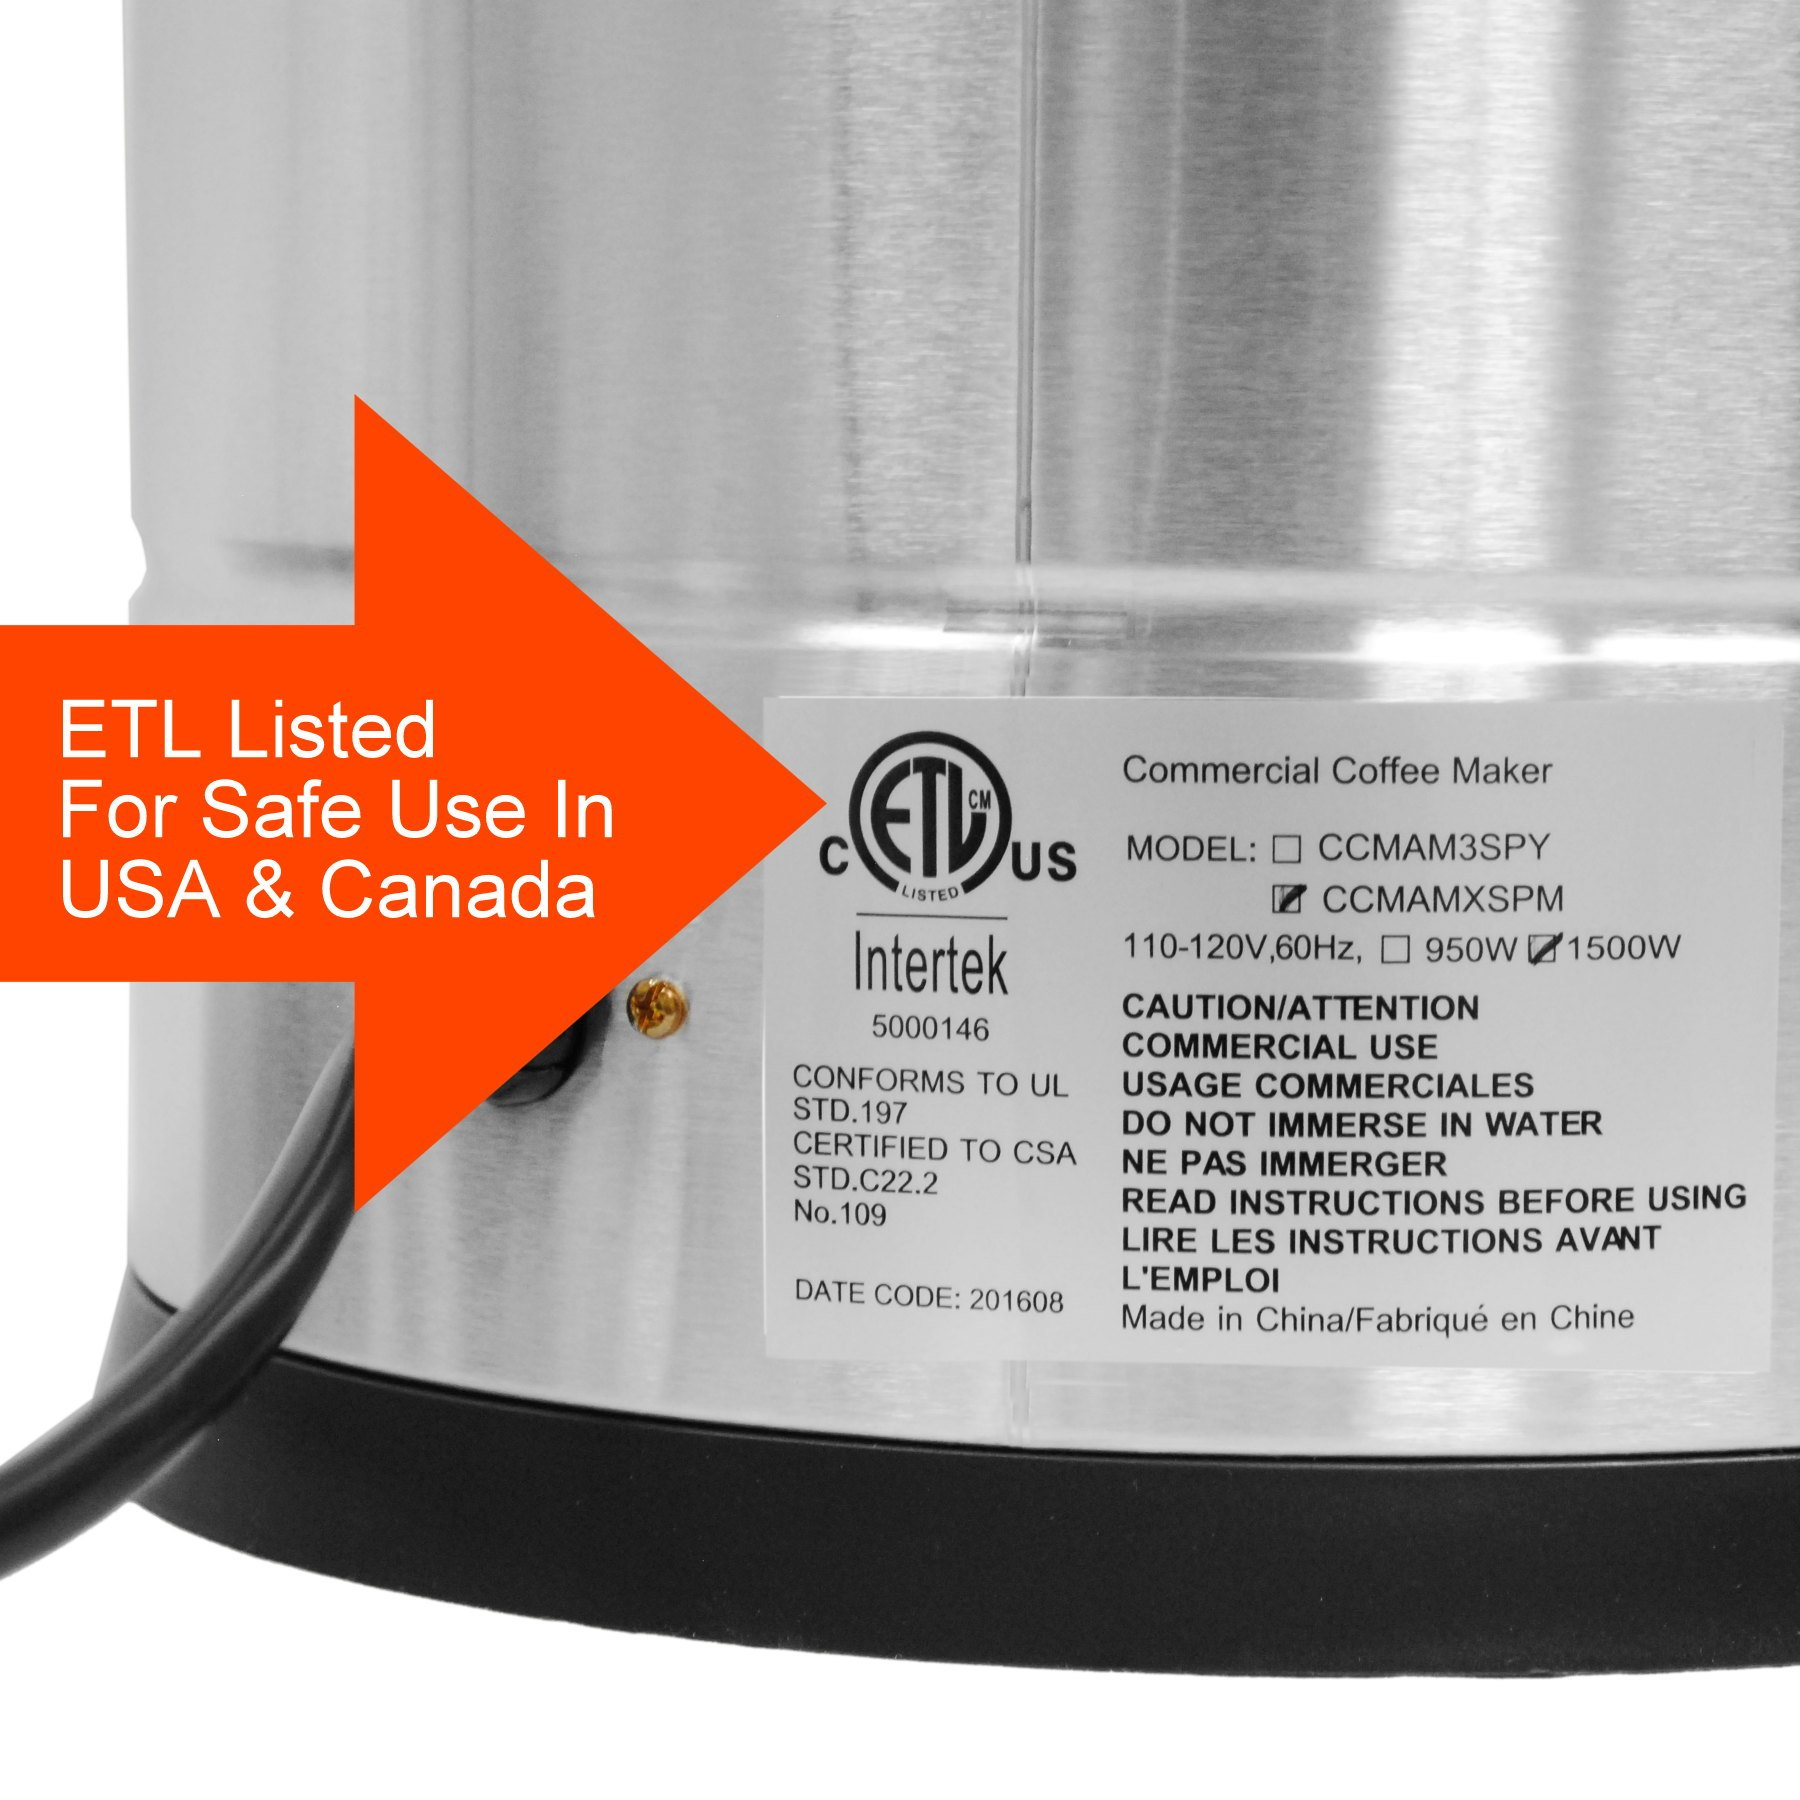 Cafe Amoroso 100 Cup Stainless Steel Coffee Urn - Premium Commercial Double Wall Design - Perfect For Catering, Churches, Banquets, Restaurants - 1 Year Warranty by Cafe Amoroso (Image #6)